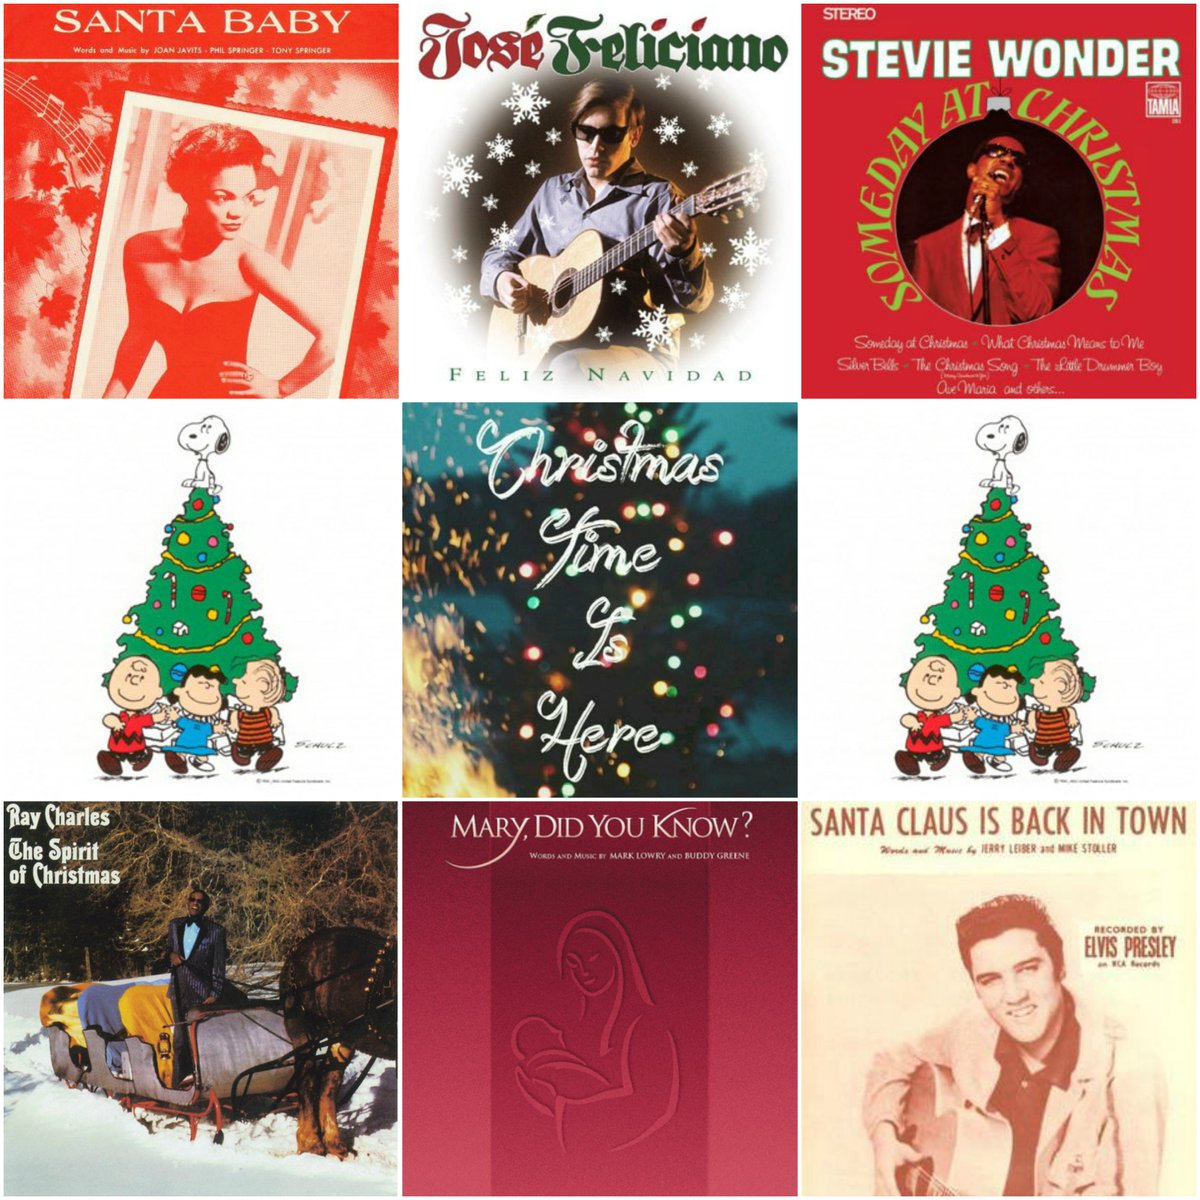 talking about their songs feliz navidad santa claus is back in town mary did you know santa baby someday at christmas more - Mary Did You Know Christmas Song